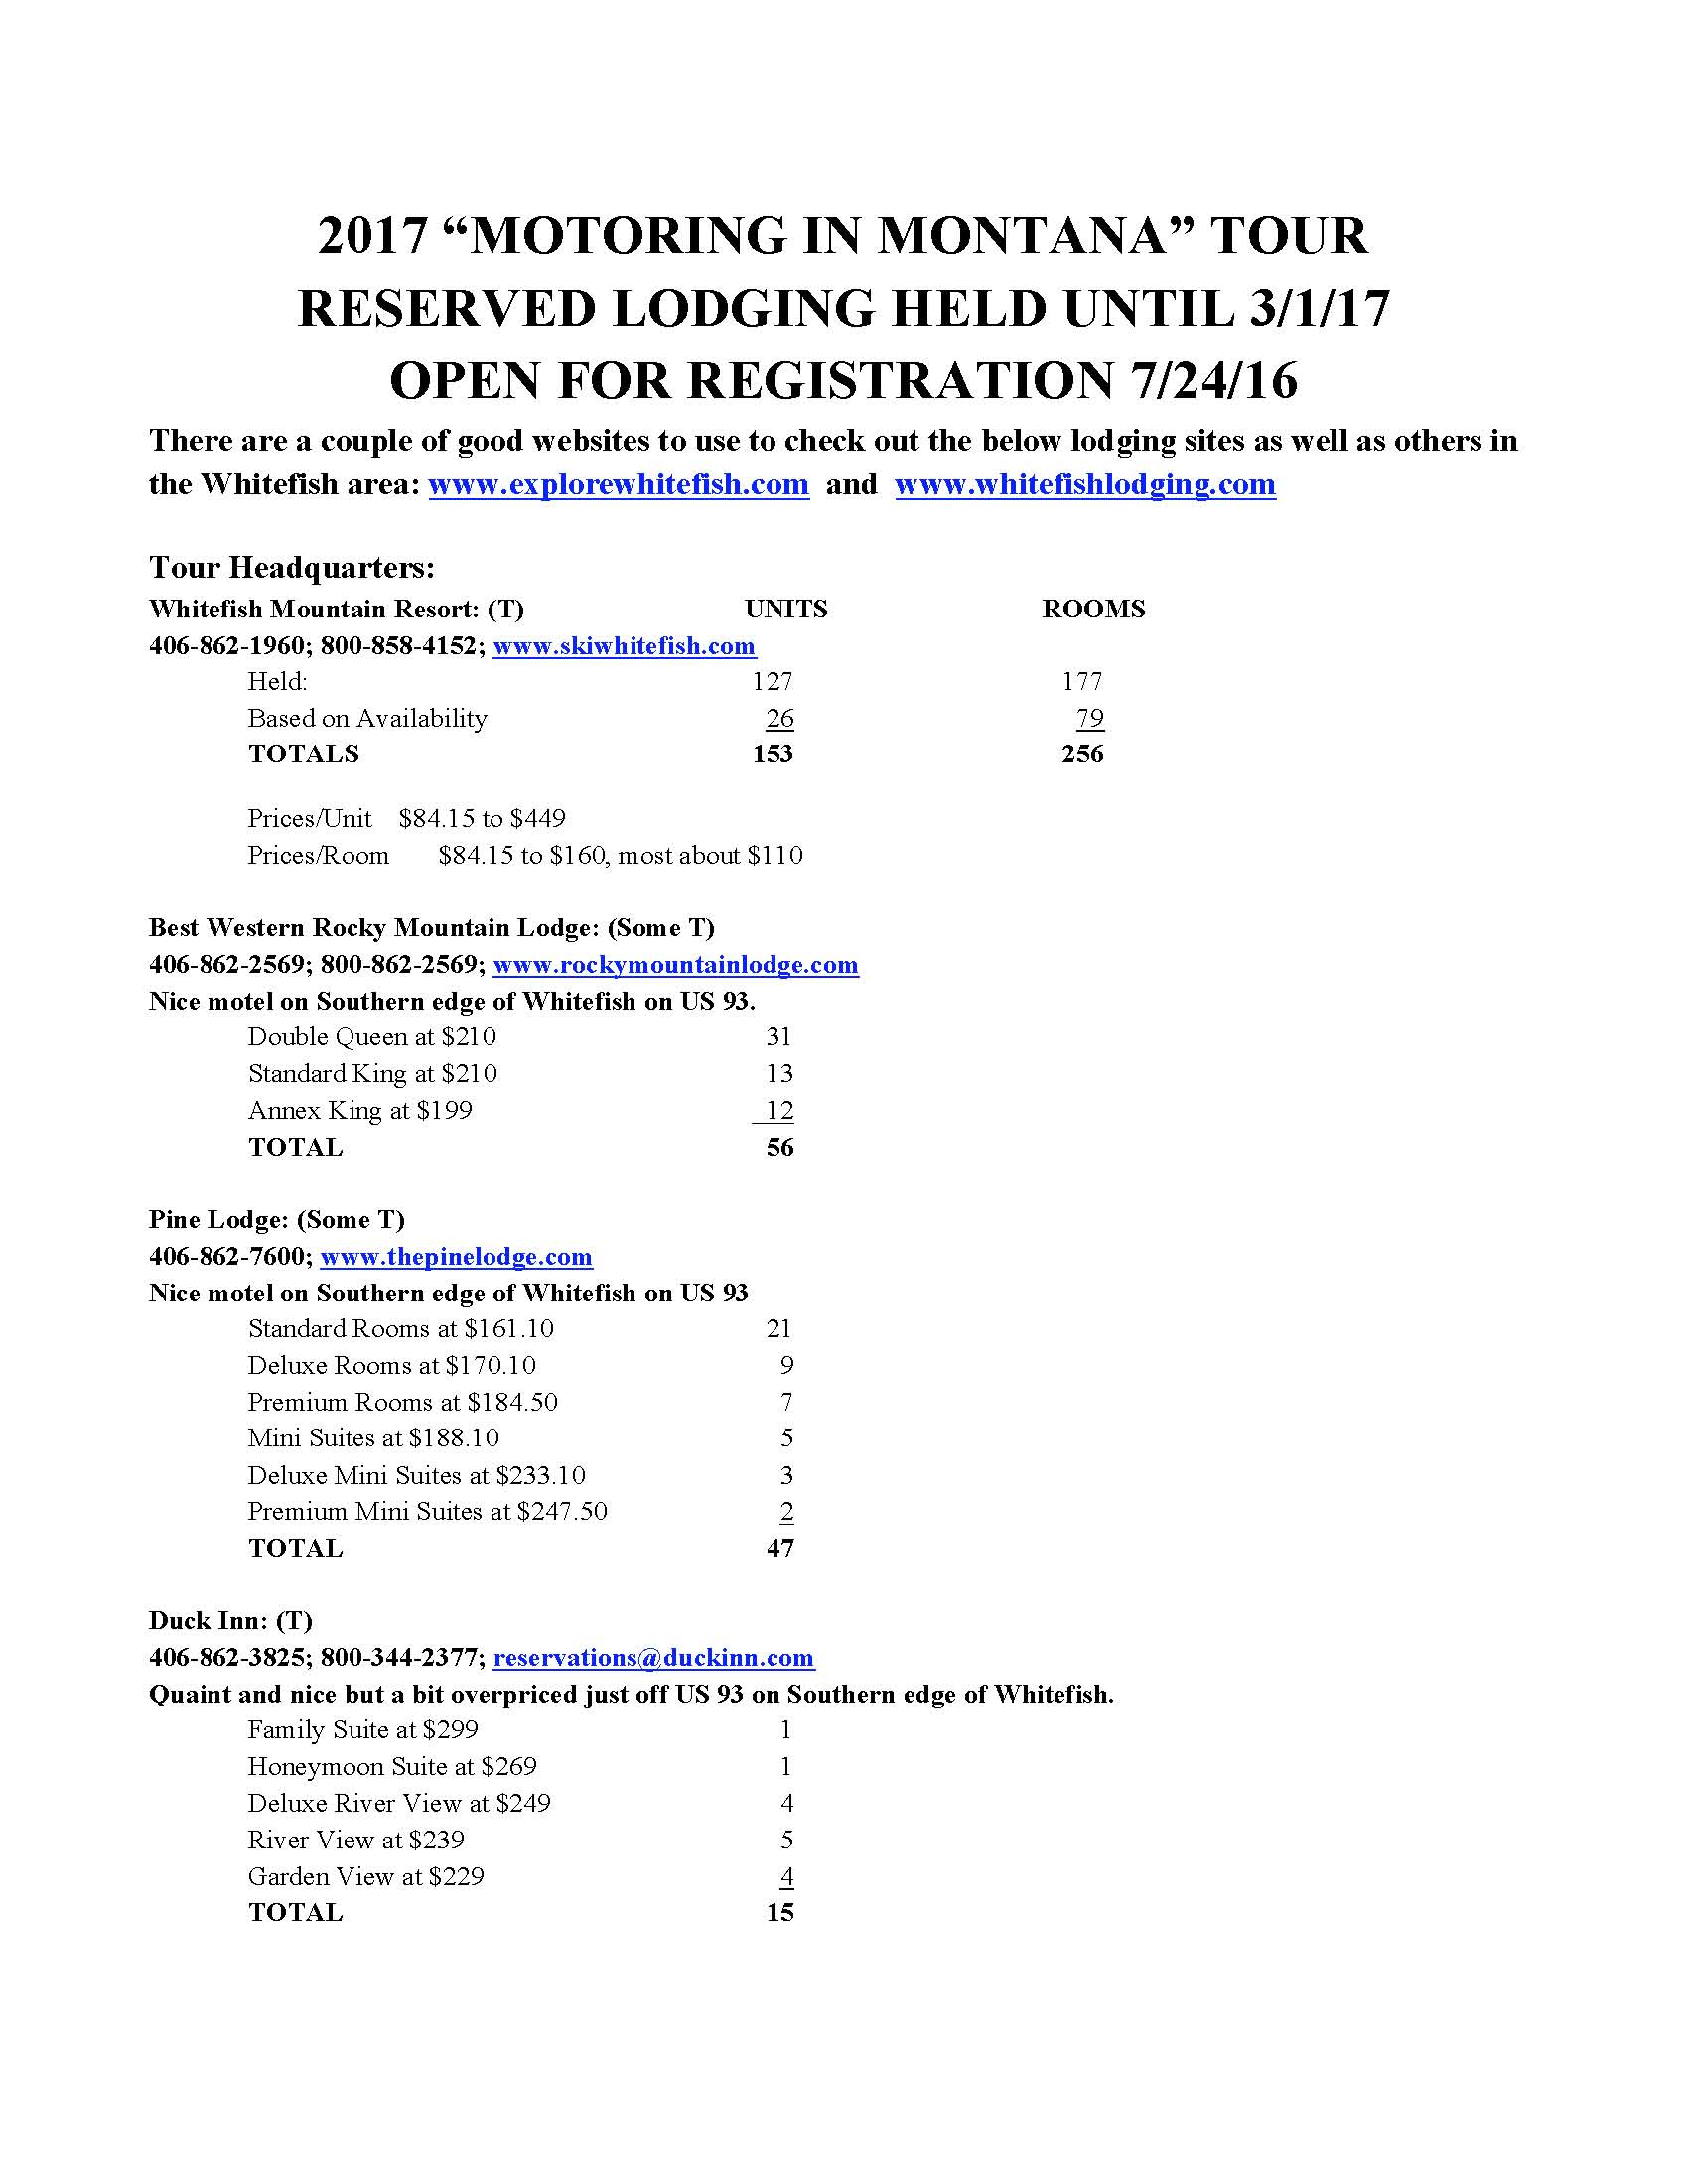 First Page of Lodging Information